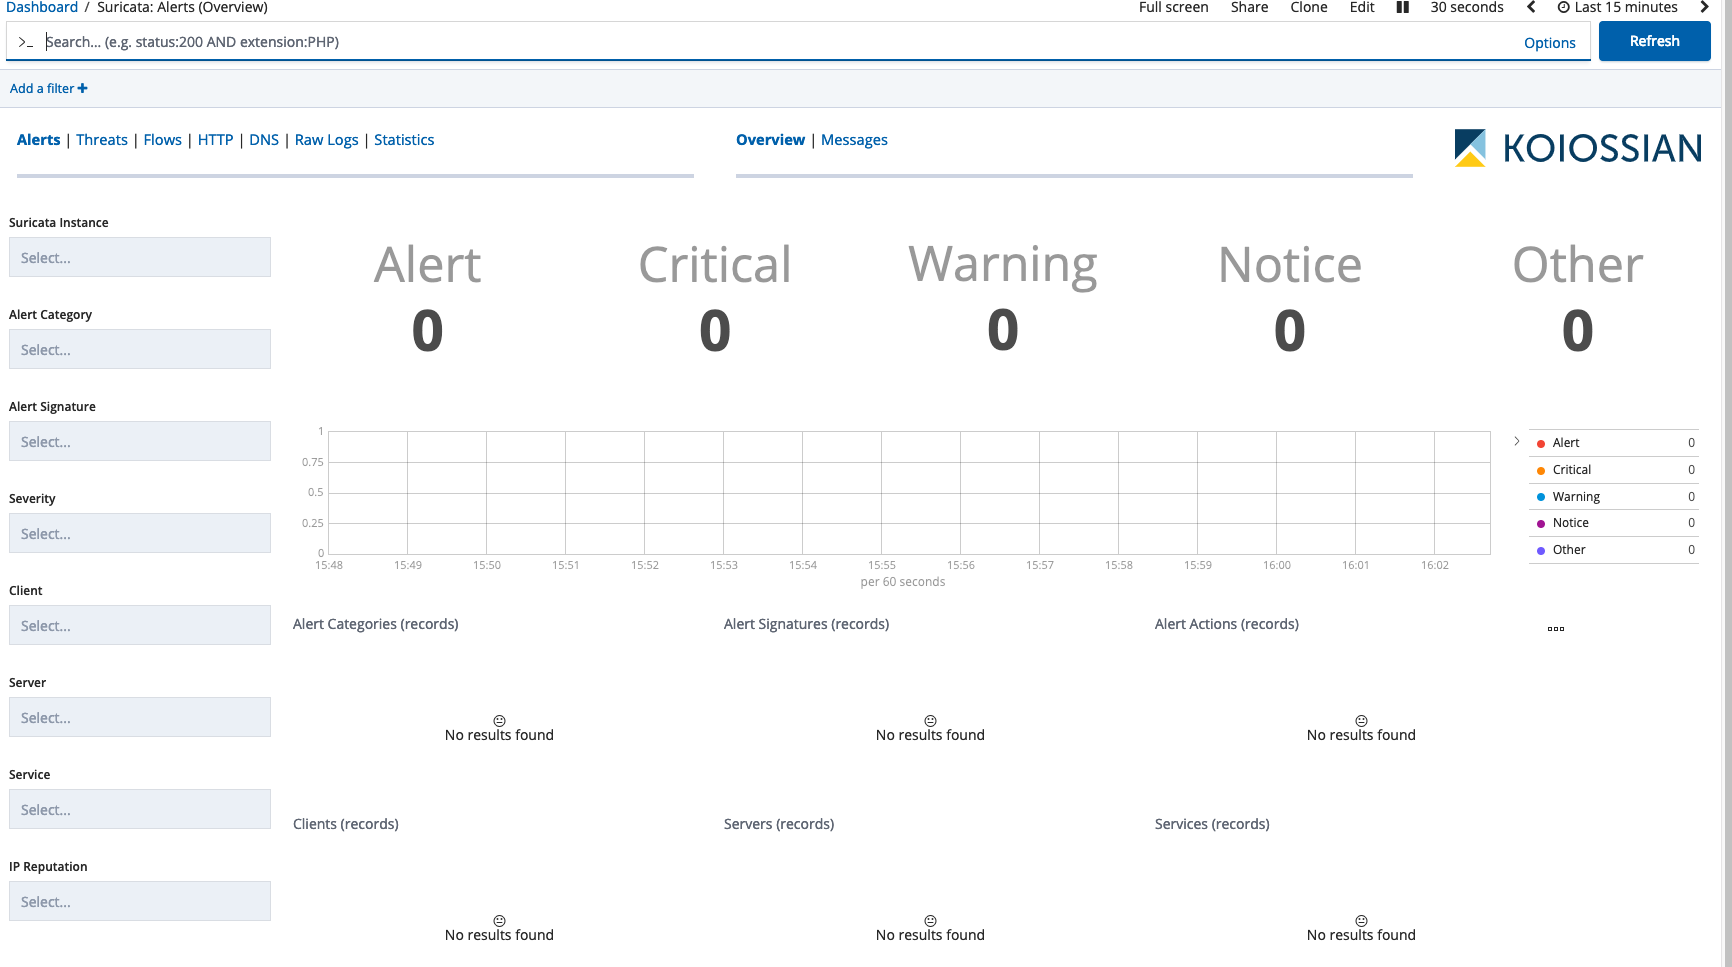 Unable to capture and display dashboard · Issue #3 · robcowart